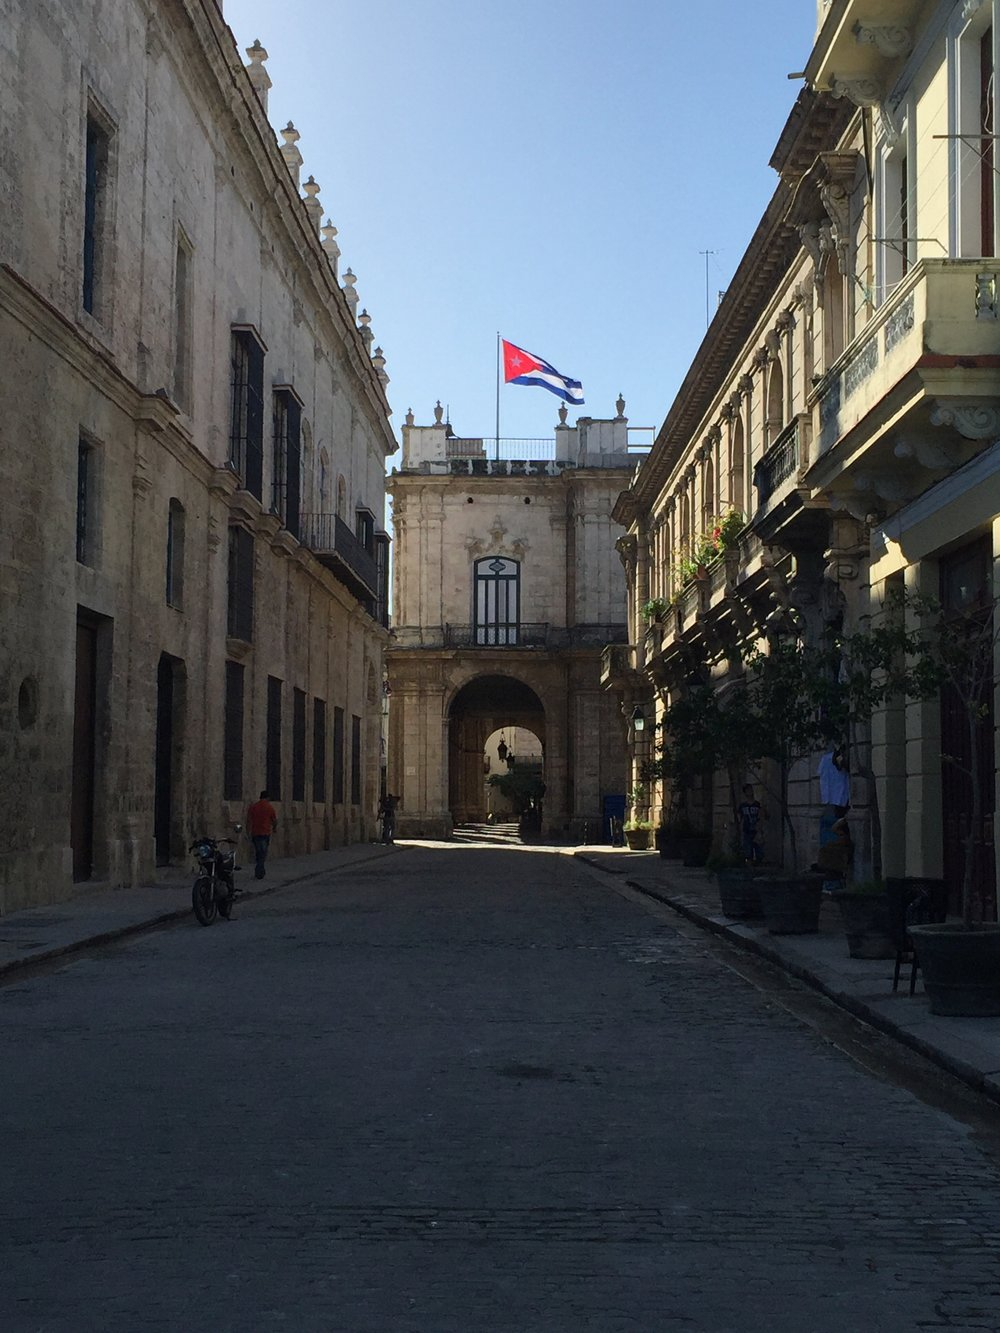 If you haven't been to Cuba, give it a visit. I went during Christmas and it was everything!